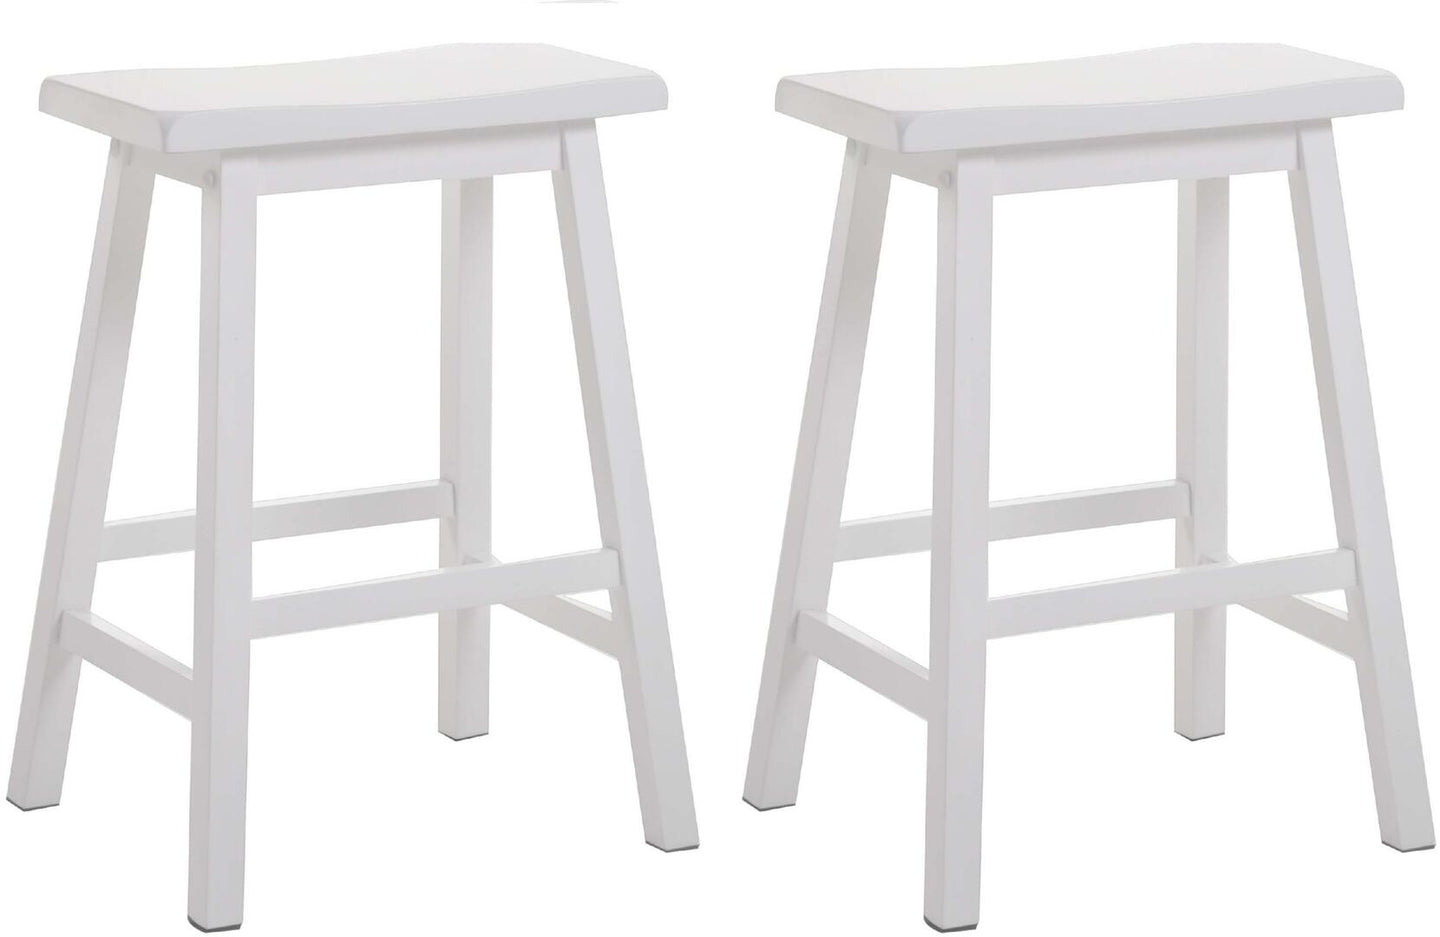 Acme Caucho White Wood Finish 2 Piece Counter Height Stool